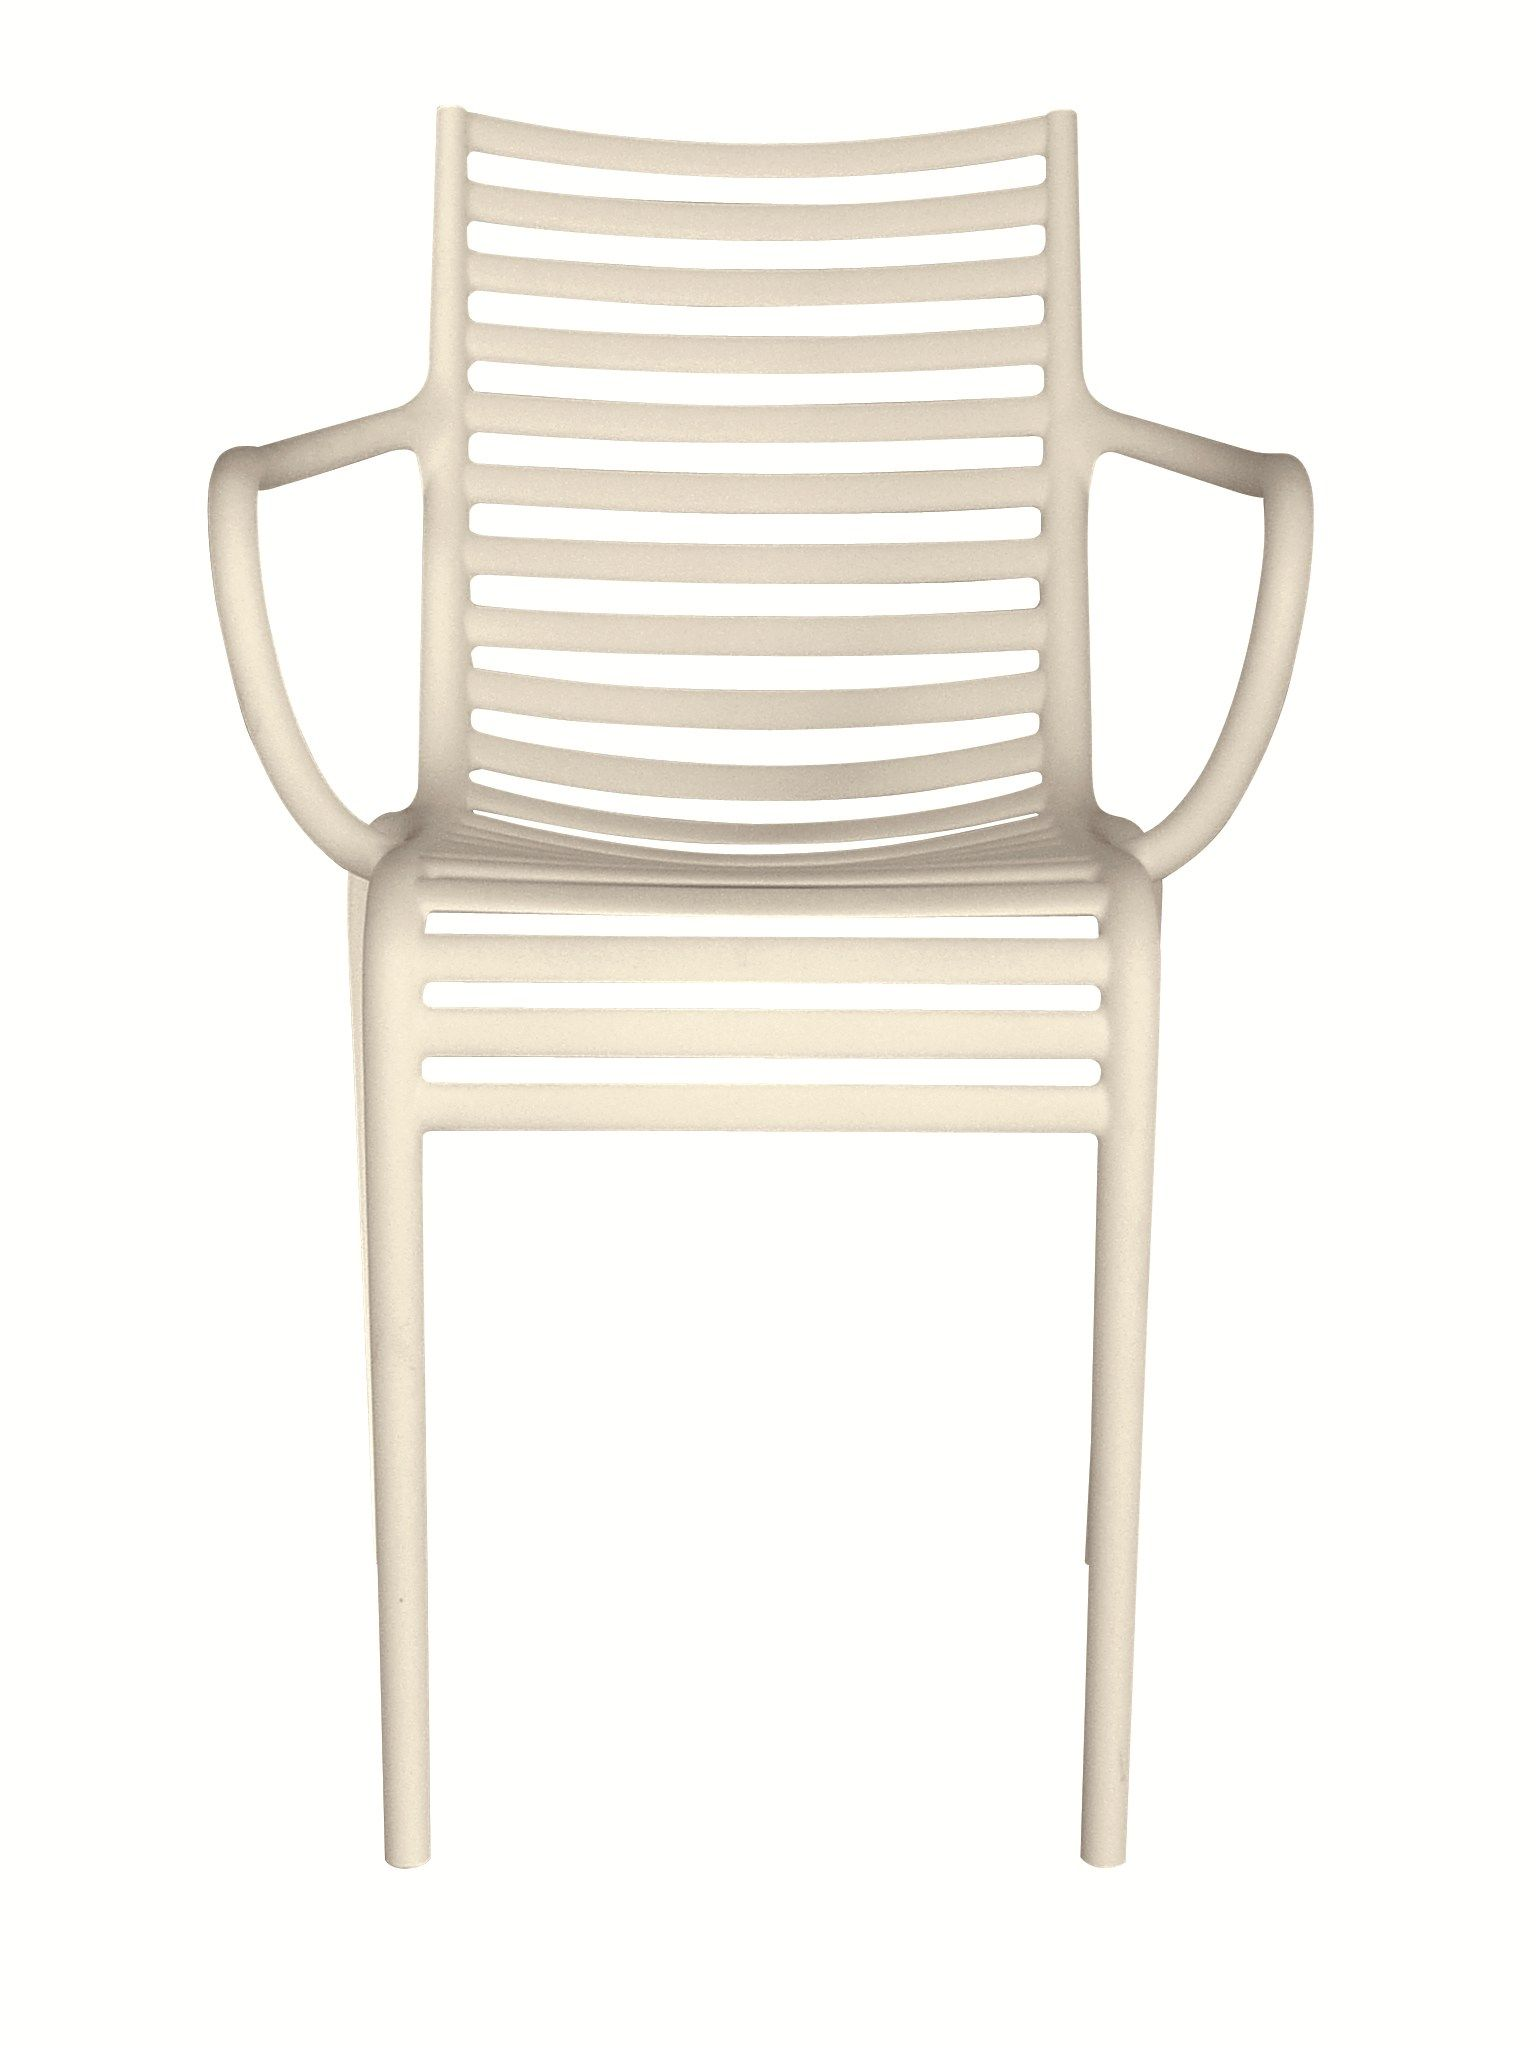 Chaise avec accoudoirs PIP–e by Driade design Philippe Starck, Eugeni Quitllet